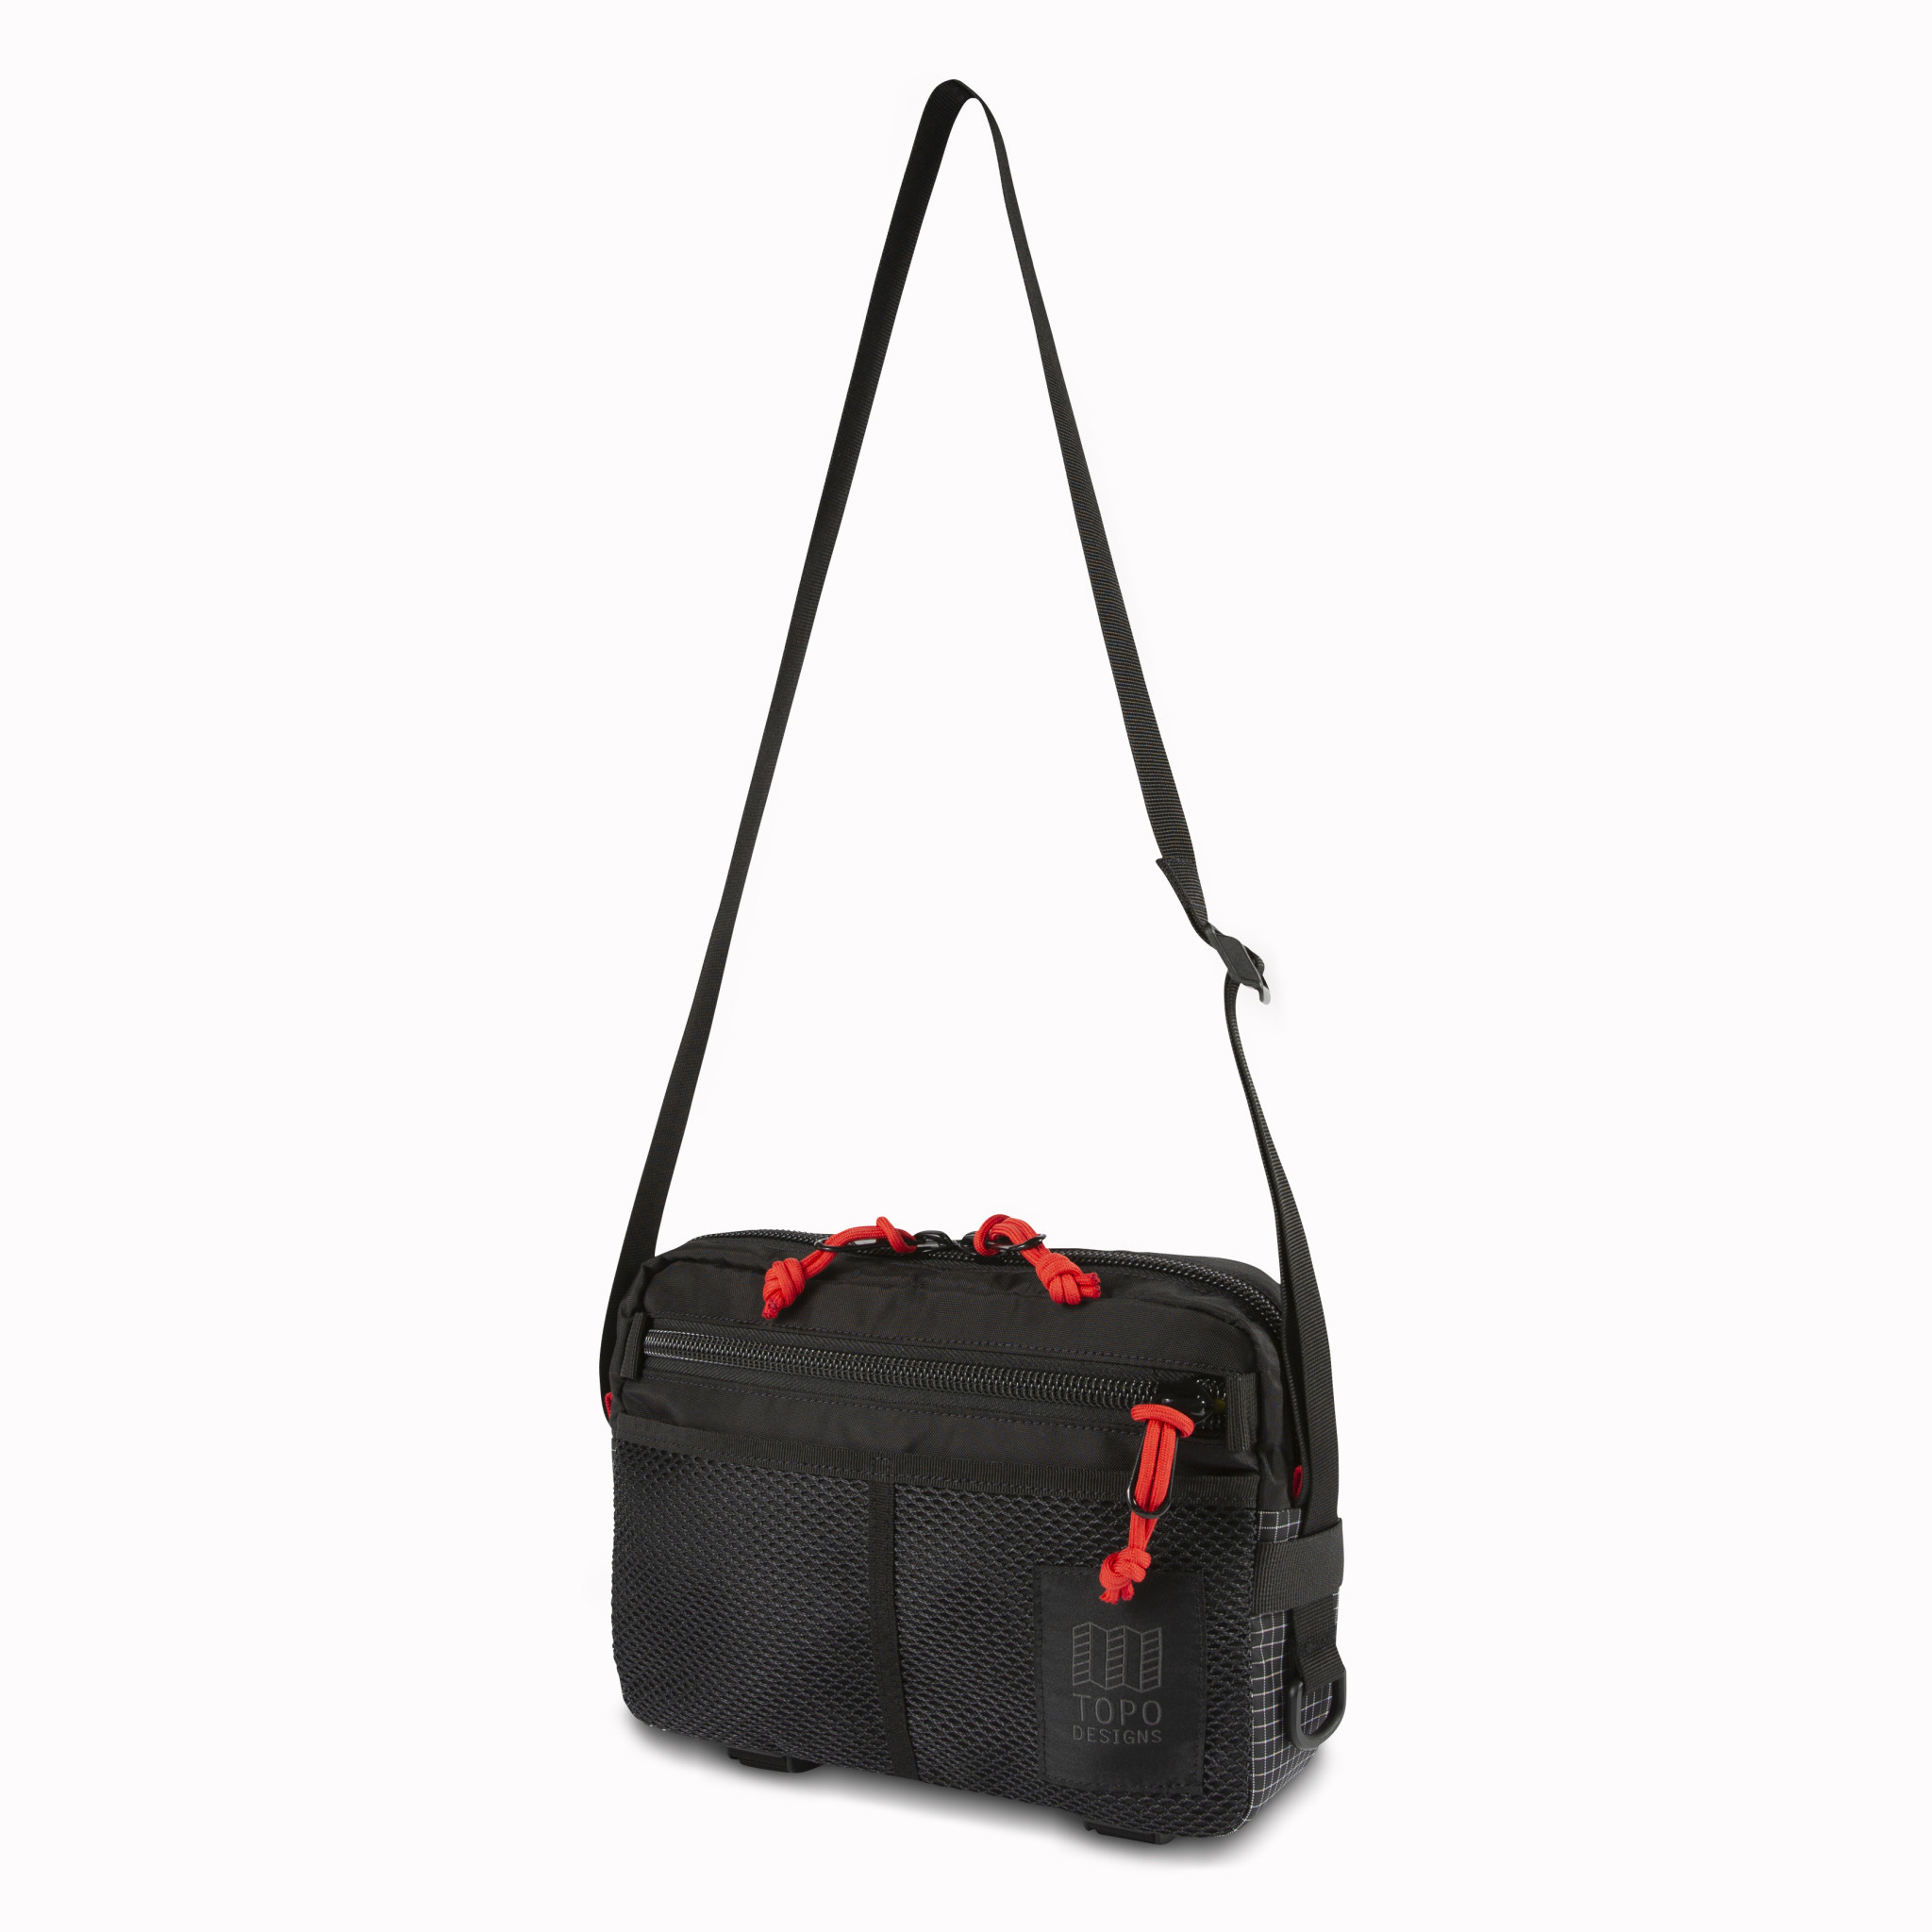 Topo Topo Block Shoulder Bag